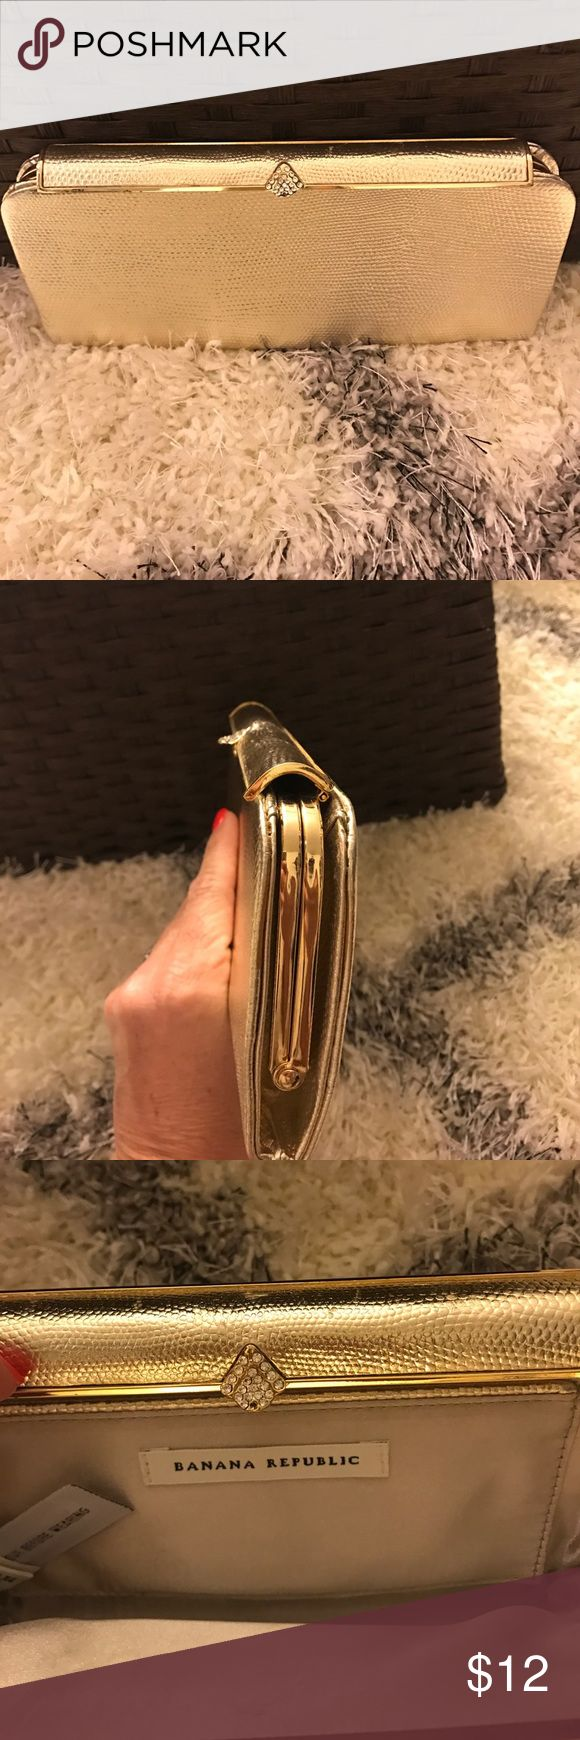 Banana Republic gold clutch Small clutch fits lipgloss, ids, credit cards and phone. (Holds nothing big and bulky) please see missing rhinestone stud on snap. Used once. Clean Banana Republic Bags Clutches & Wristlets